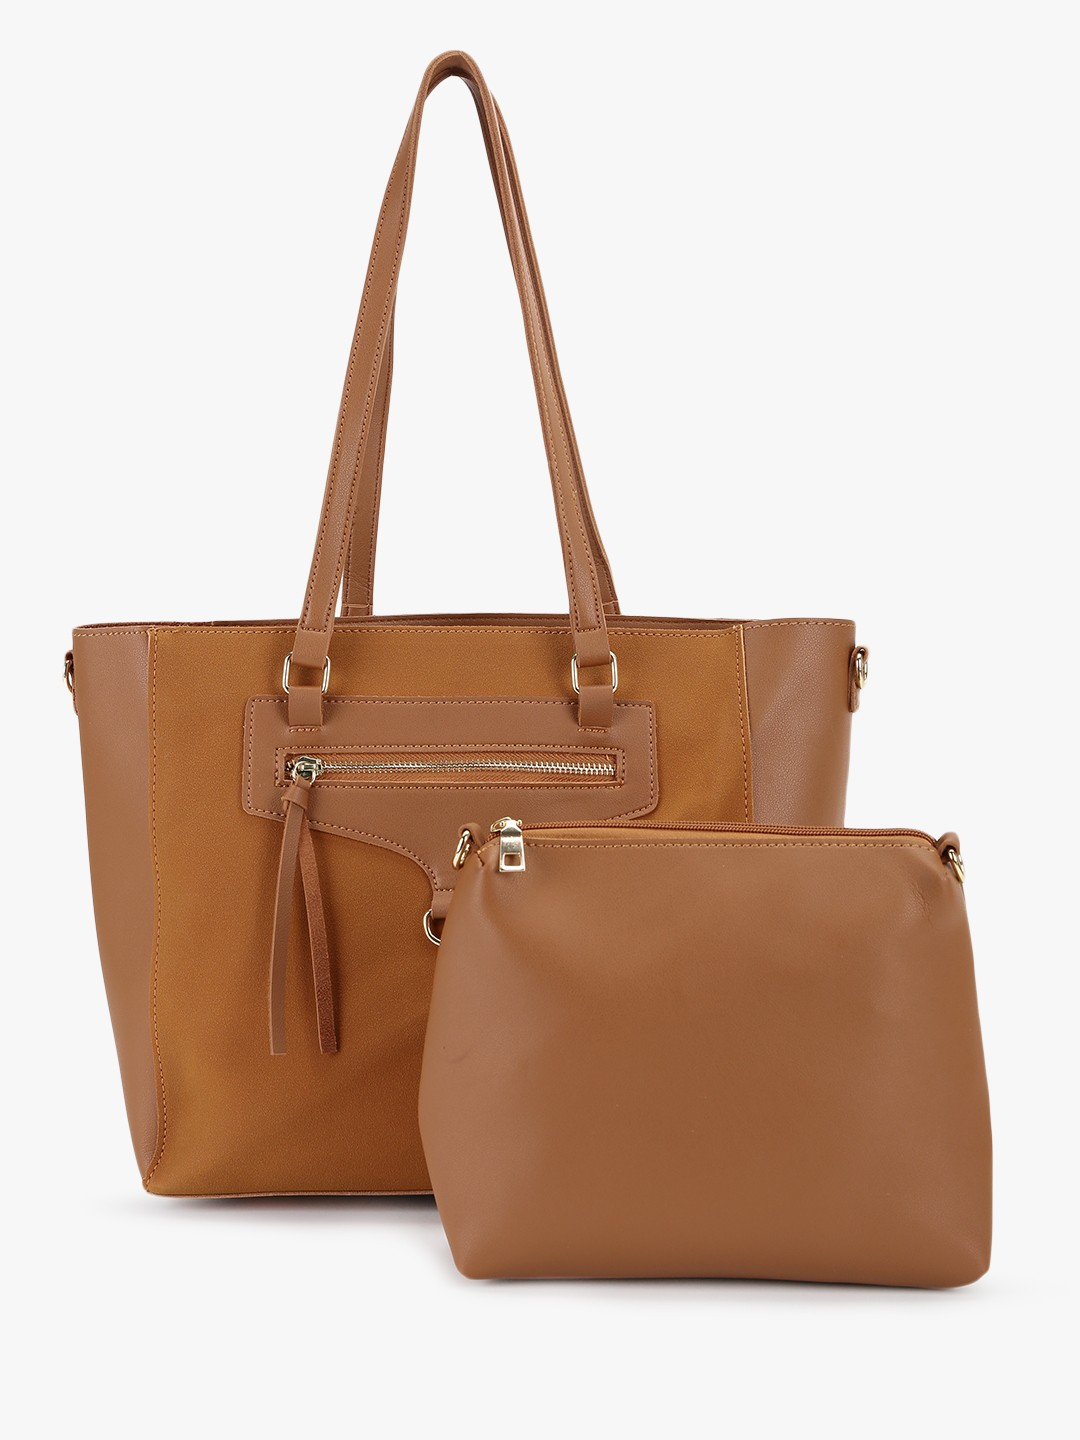 Origami Lily Tan Front Pocket Handbag With Pouch 1